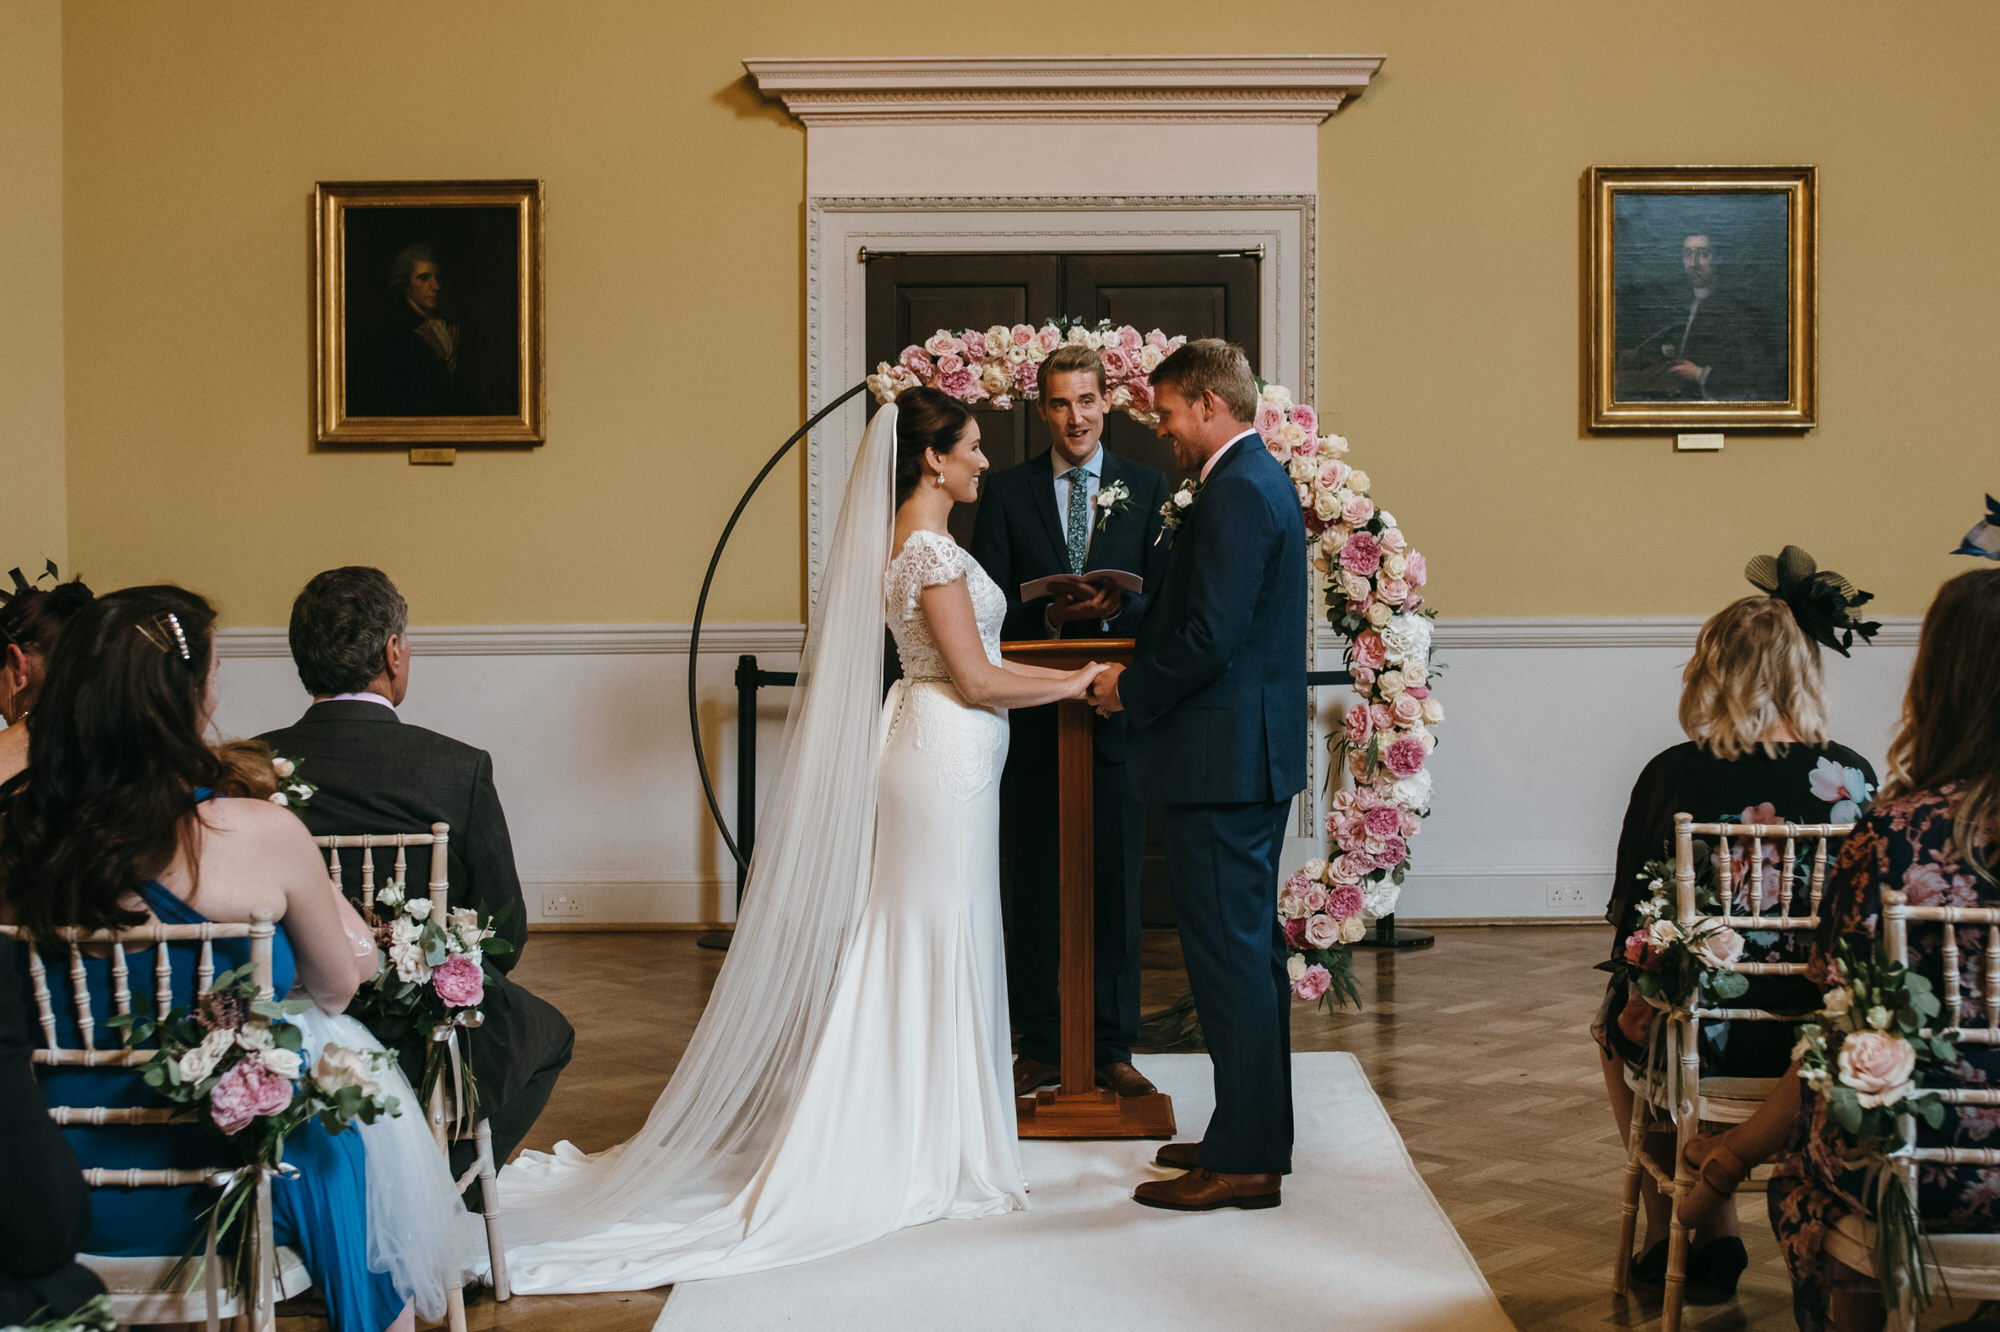 Assembly rooms bath wedding venue simon biffen photography 3